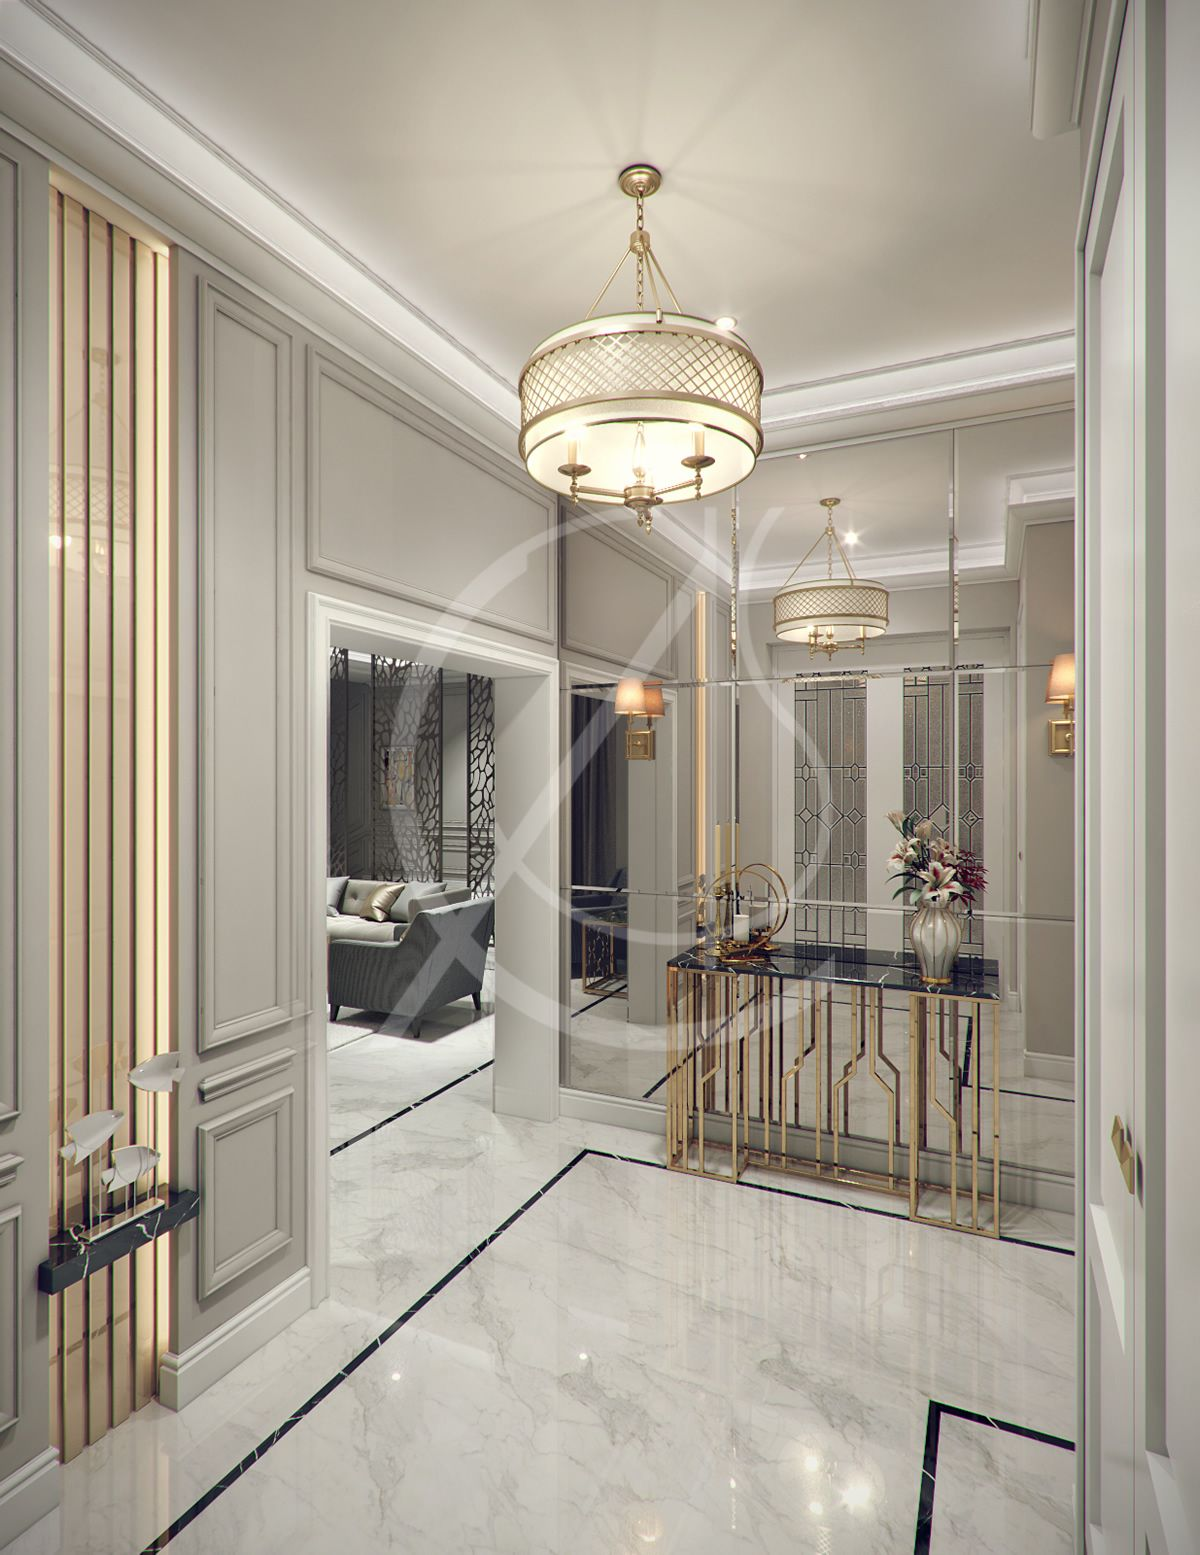 Modern Classic Villa Interior Design Riyadh Saudi Arabia Marble Floor Panel Walls And